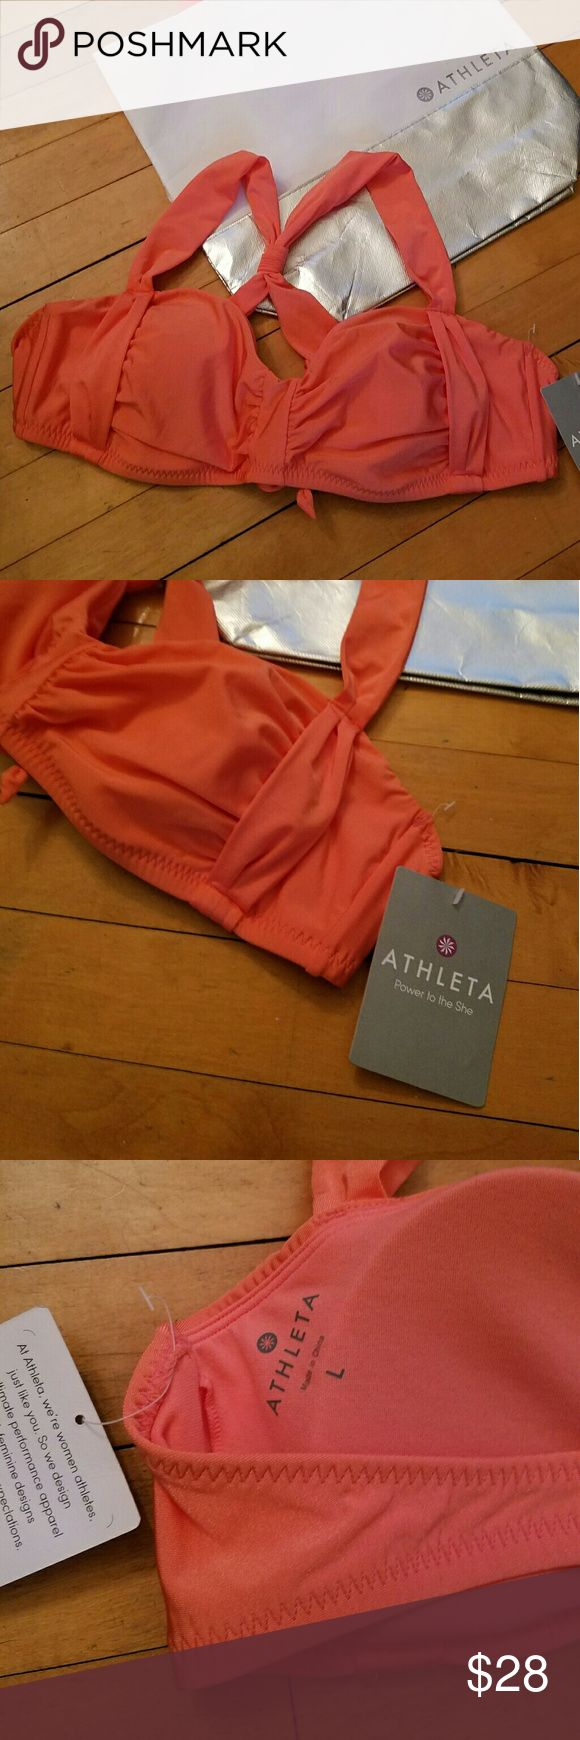 NWT Athleta Aqualuxe Swim Top NWT Athleta Aqualuxe Swim Top  Cut from signature, shimmering AquaLuxe fabric for moisture-wicking performance and a luxuriously soft feel, this bandeau bikini top features removable cups for adjustable coverage. A sweetheart neckline flatters the d?colletage. AquaLuxe swim fabric provides moisture-wicking stretch and metallic luster UPF 50+ Removable cups Adjustable ties Nylon / spandex Light coral color, size L. Bag not included Athleta Swim